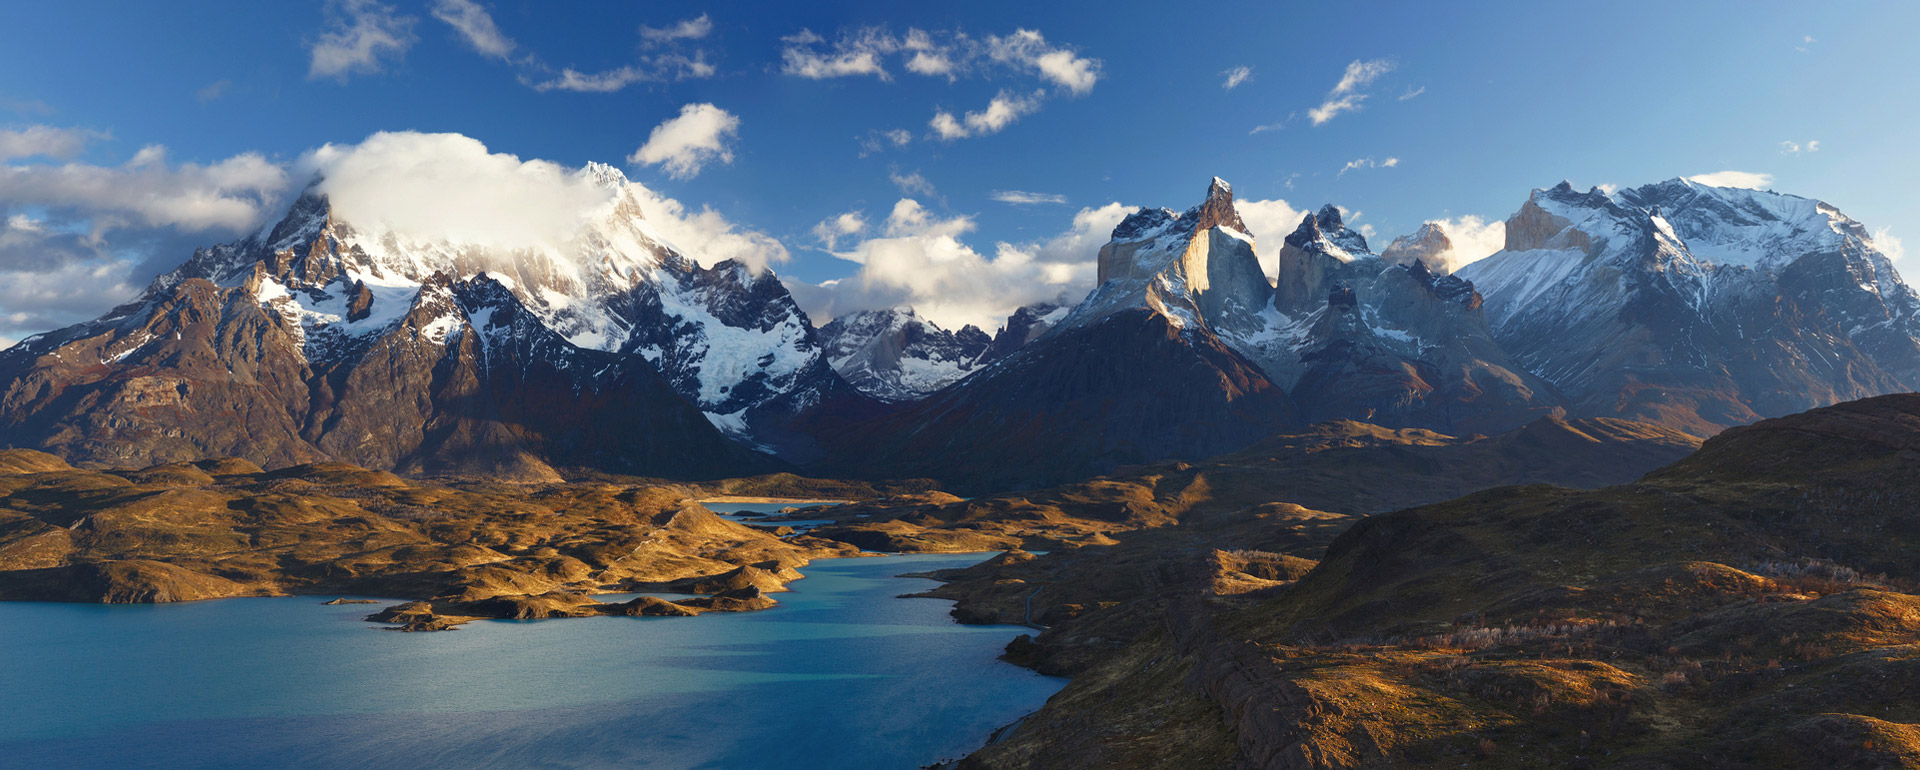 TDF-Torres-Paine-Landscape-Mountains-River